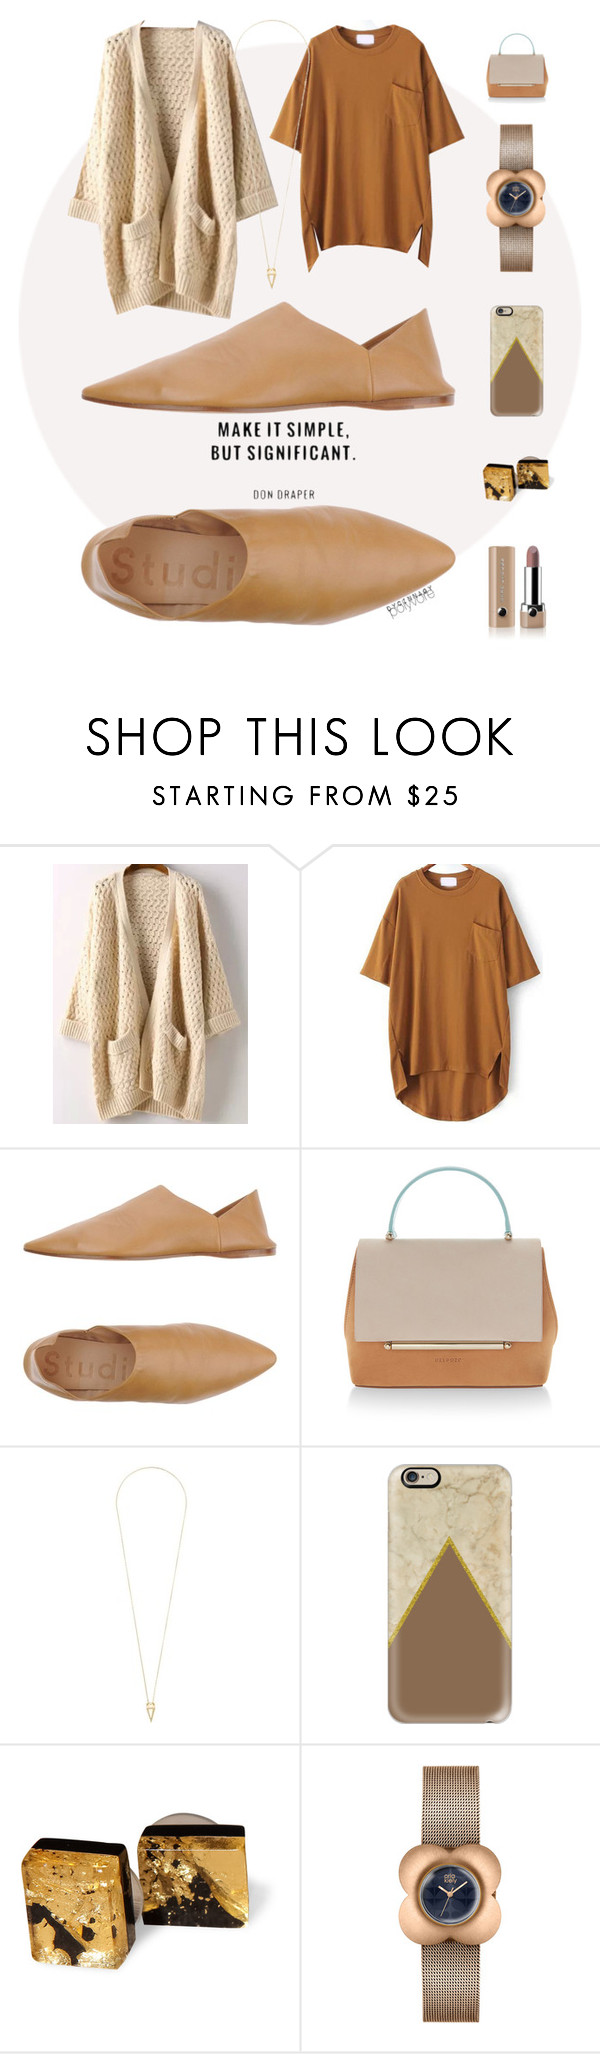 """Simply Significant"" by dycinnagy ❤ liked on Polyvore featuring Acne Studios, Delpozo, Noor Fares, Casetify, Orla Kiely, Marc Jacobs, simple, nude, camel and FavoriteColors"